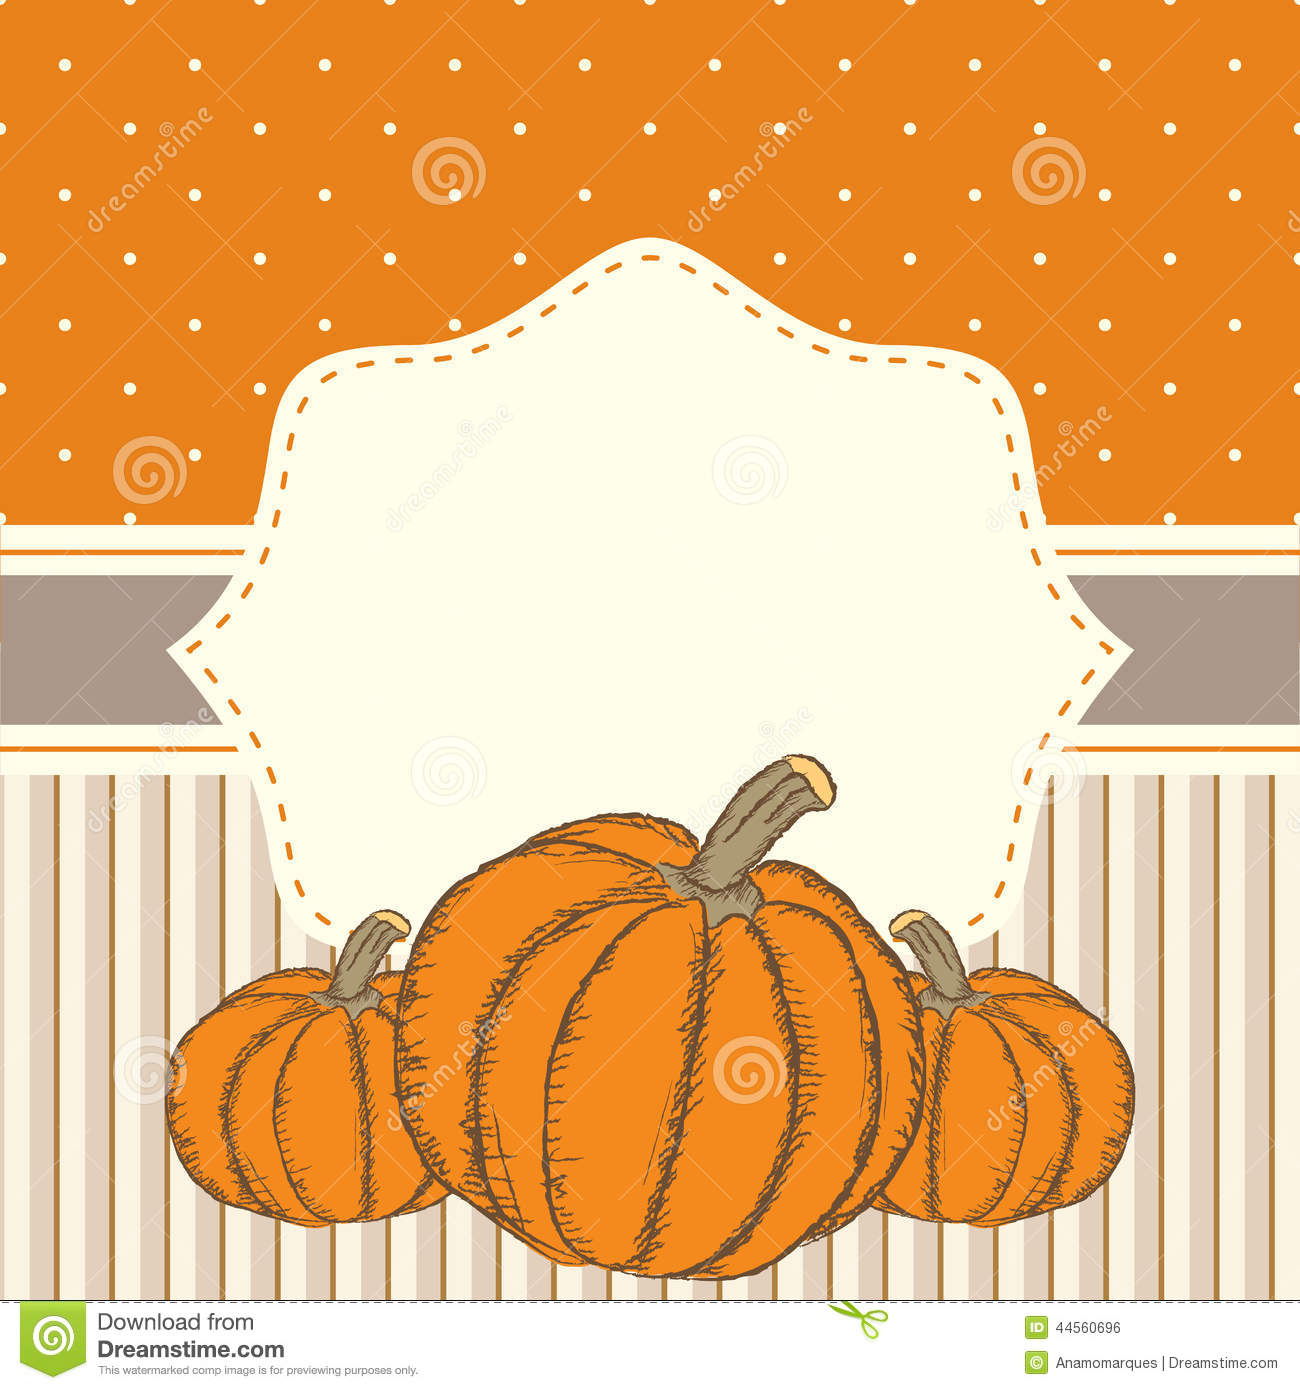 Hand Drawn Invitation Or Greeting Thanksgiving Card Template Wit with regard to dimensions 1300 X 1390